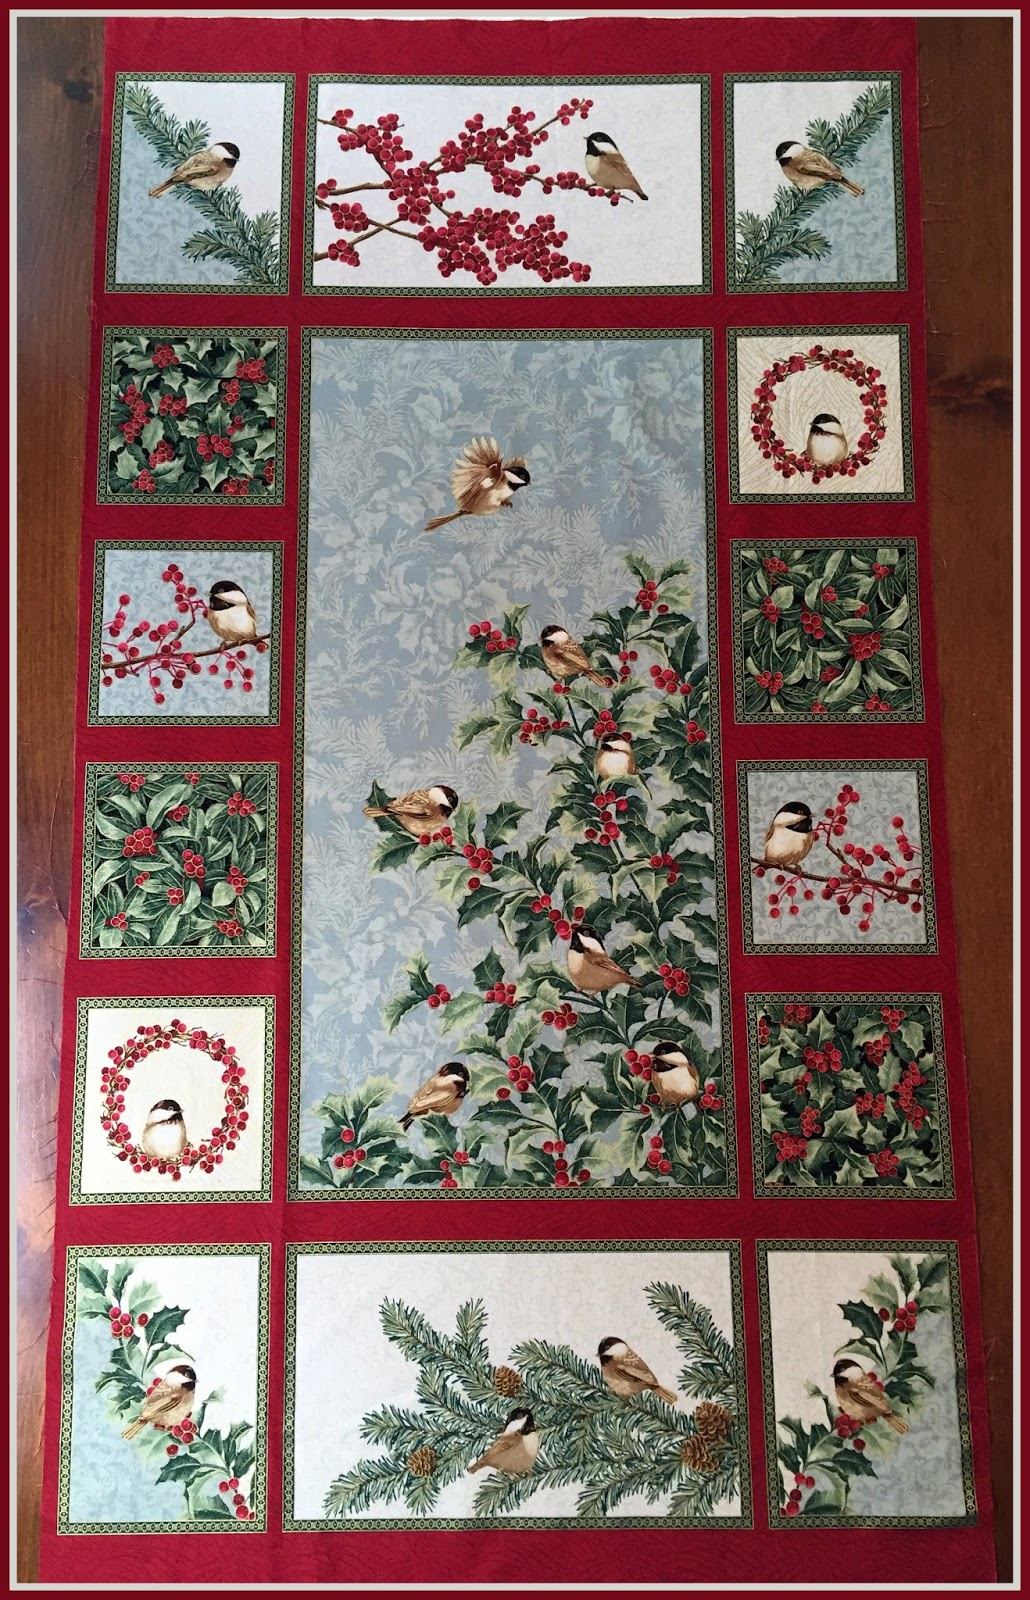 Karen\'s Quilts, Crows and Cardinals: Chickadees and Berries - We ...